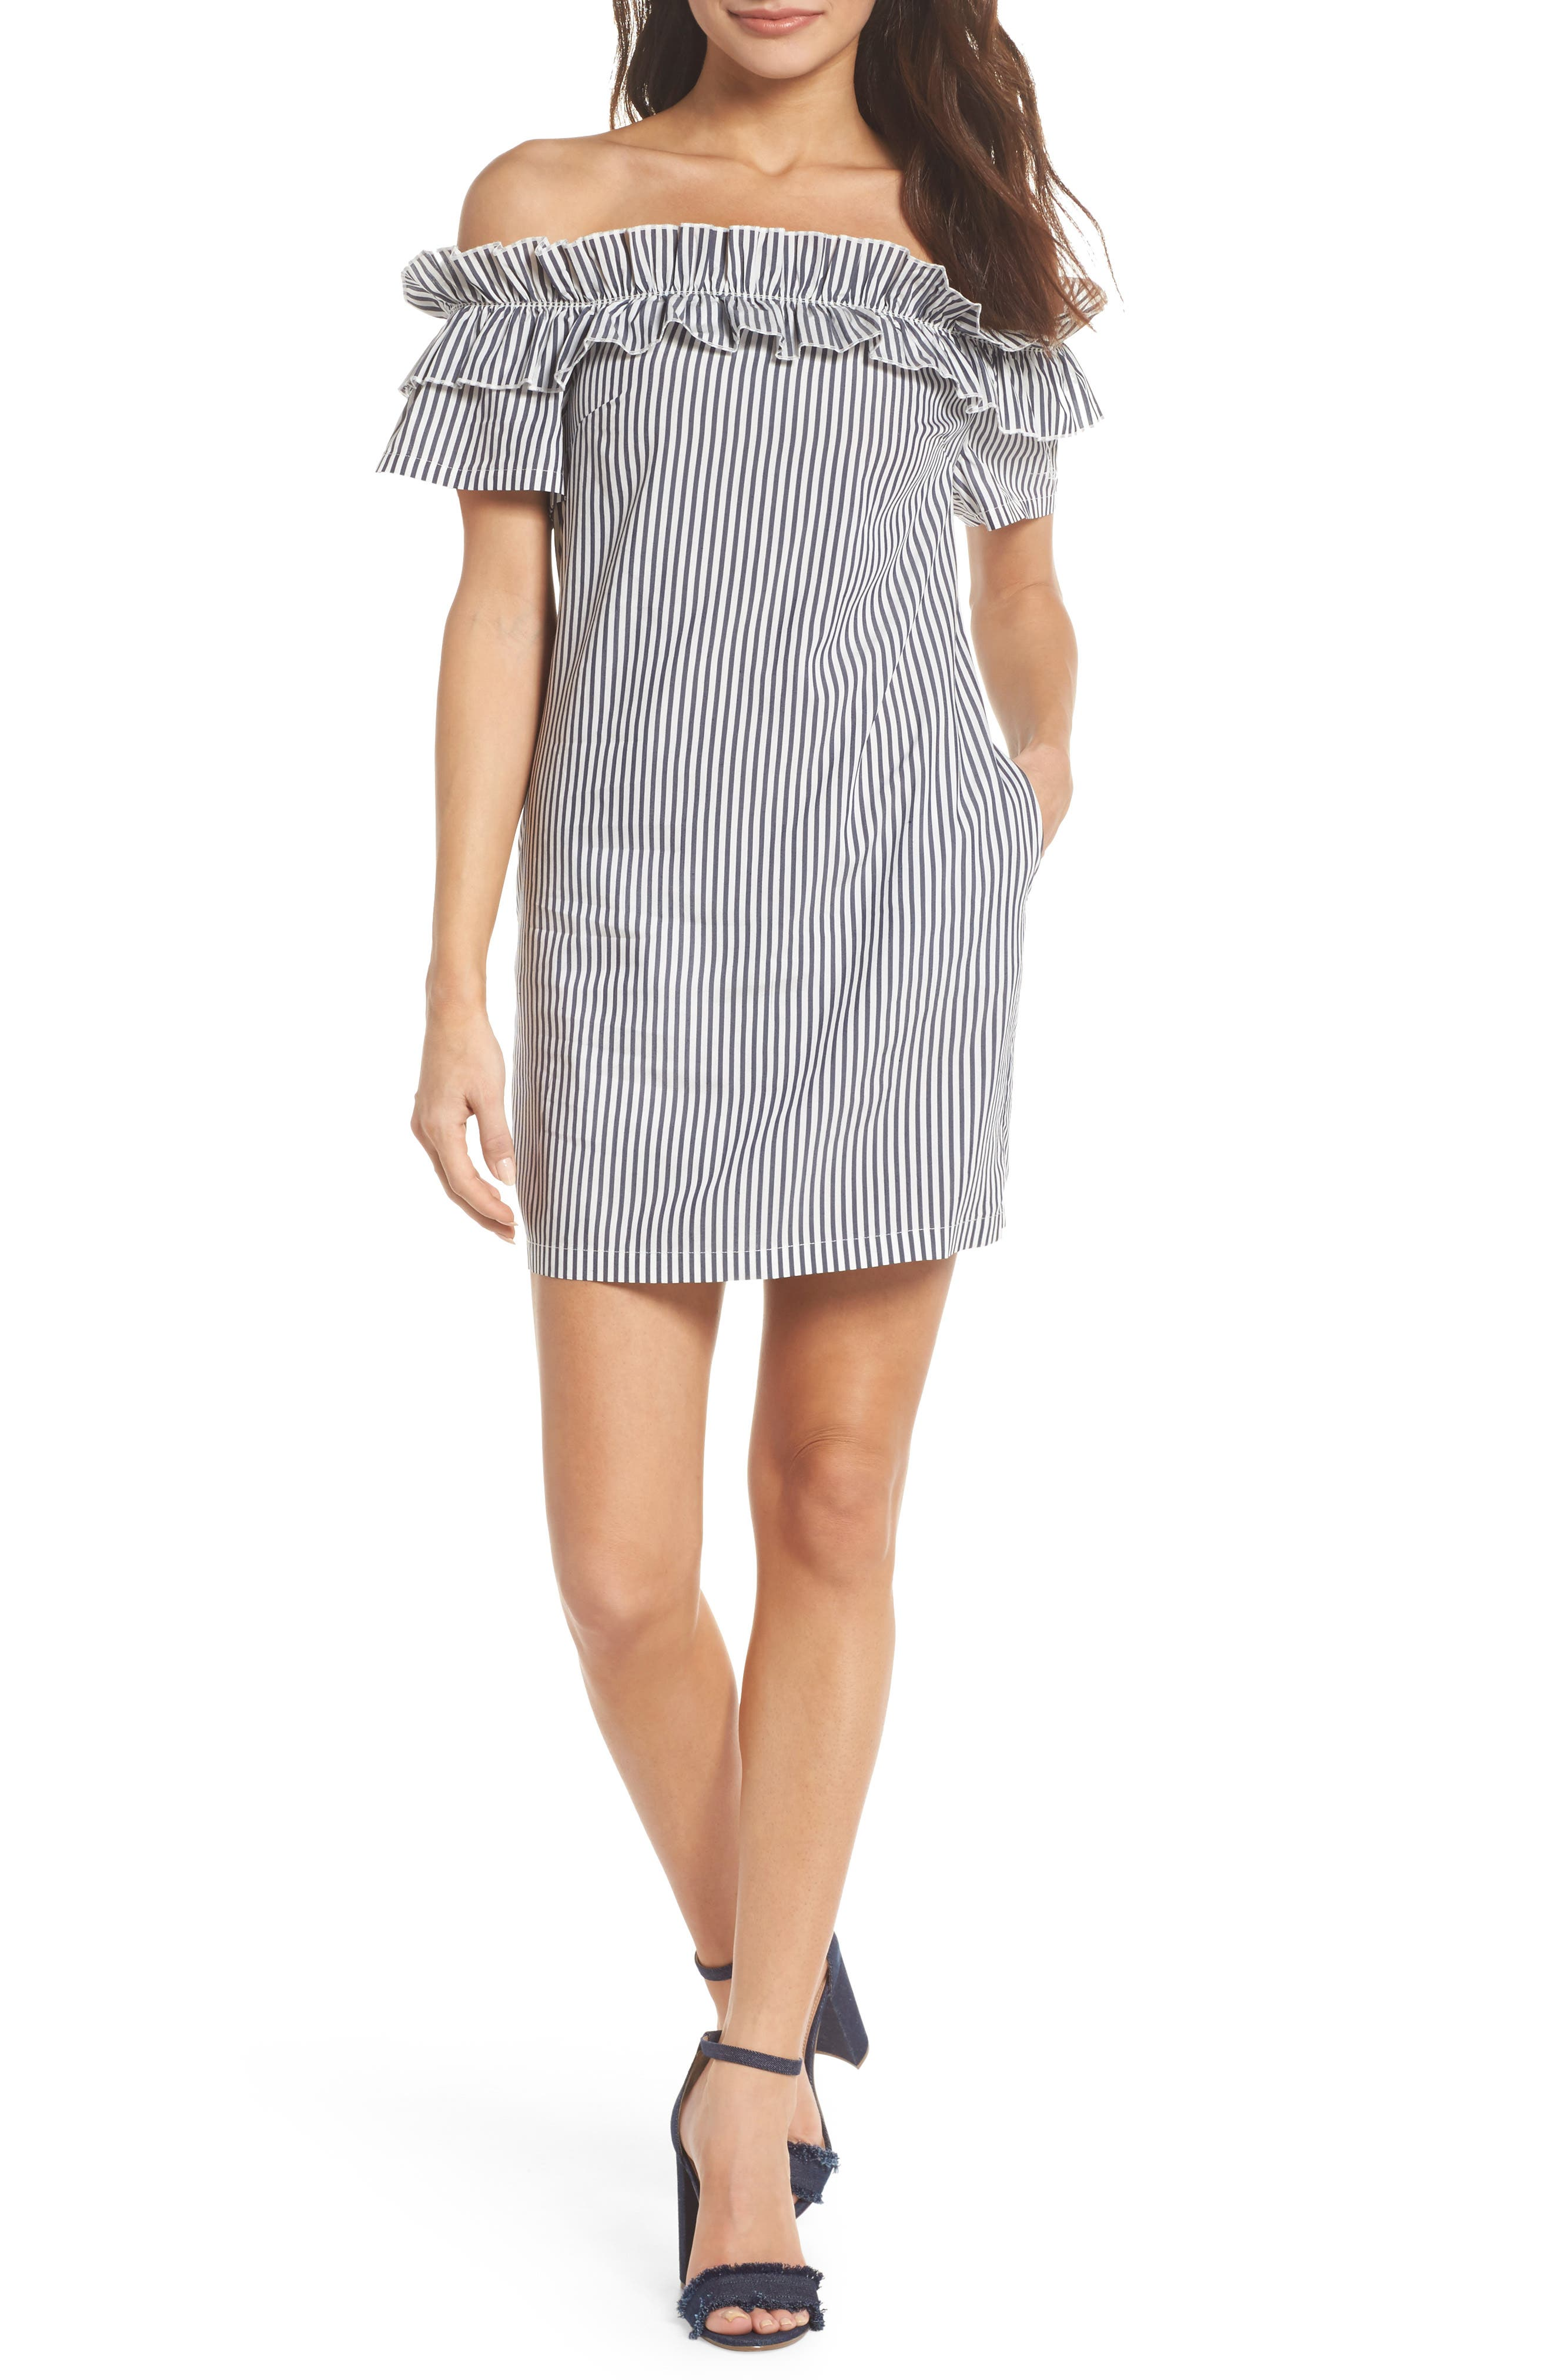 Patio Only Stripe Minidress,                         Main,                         color,